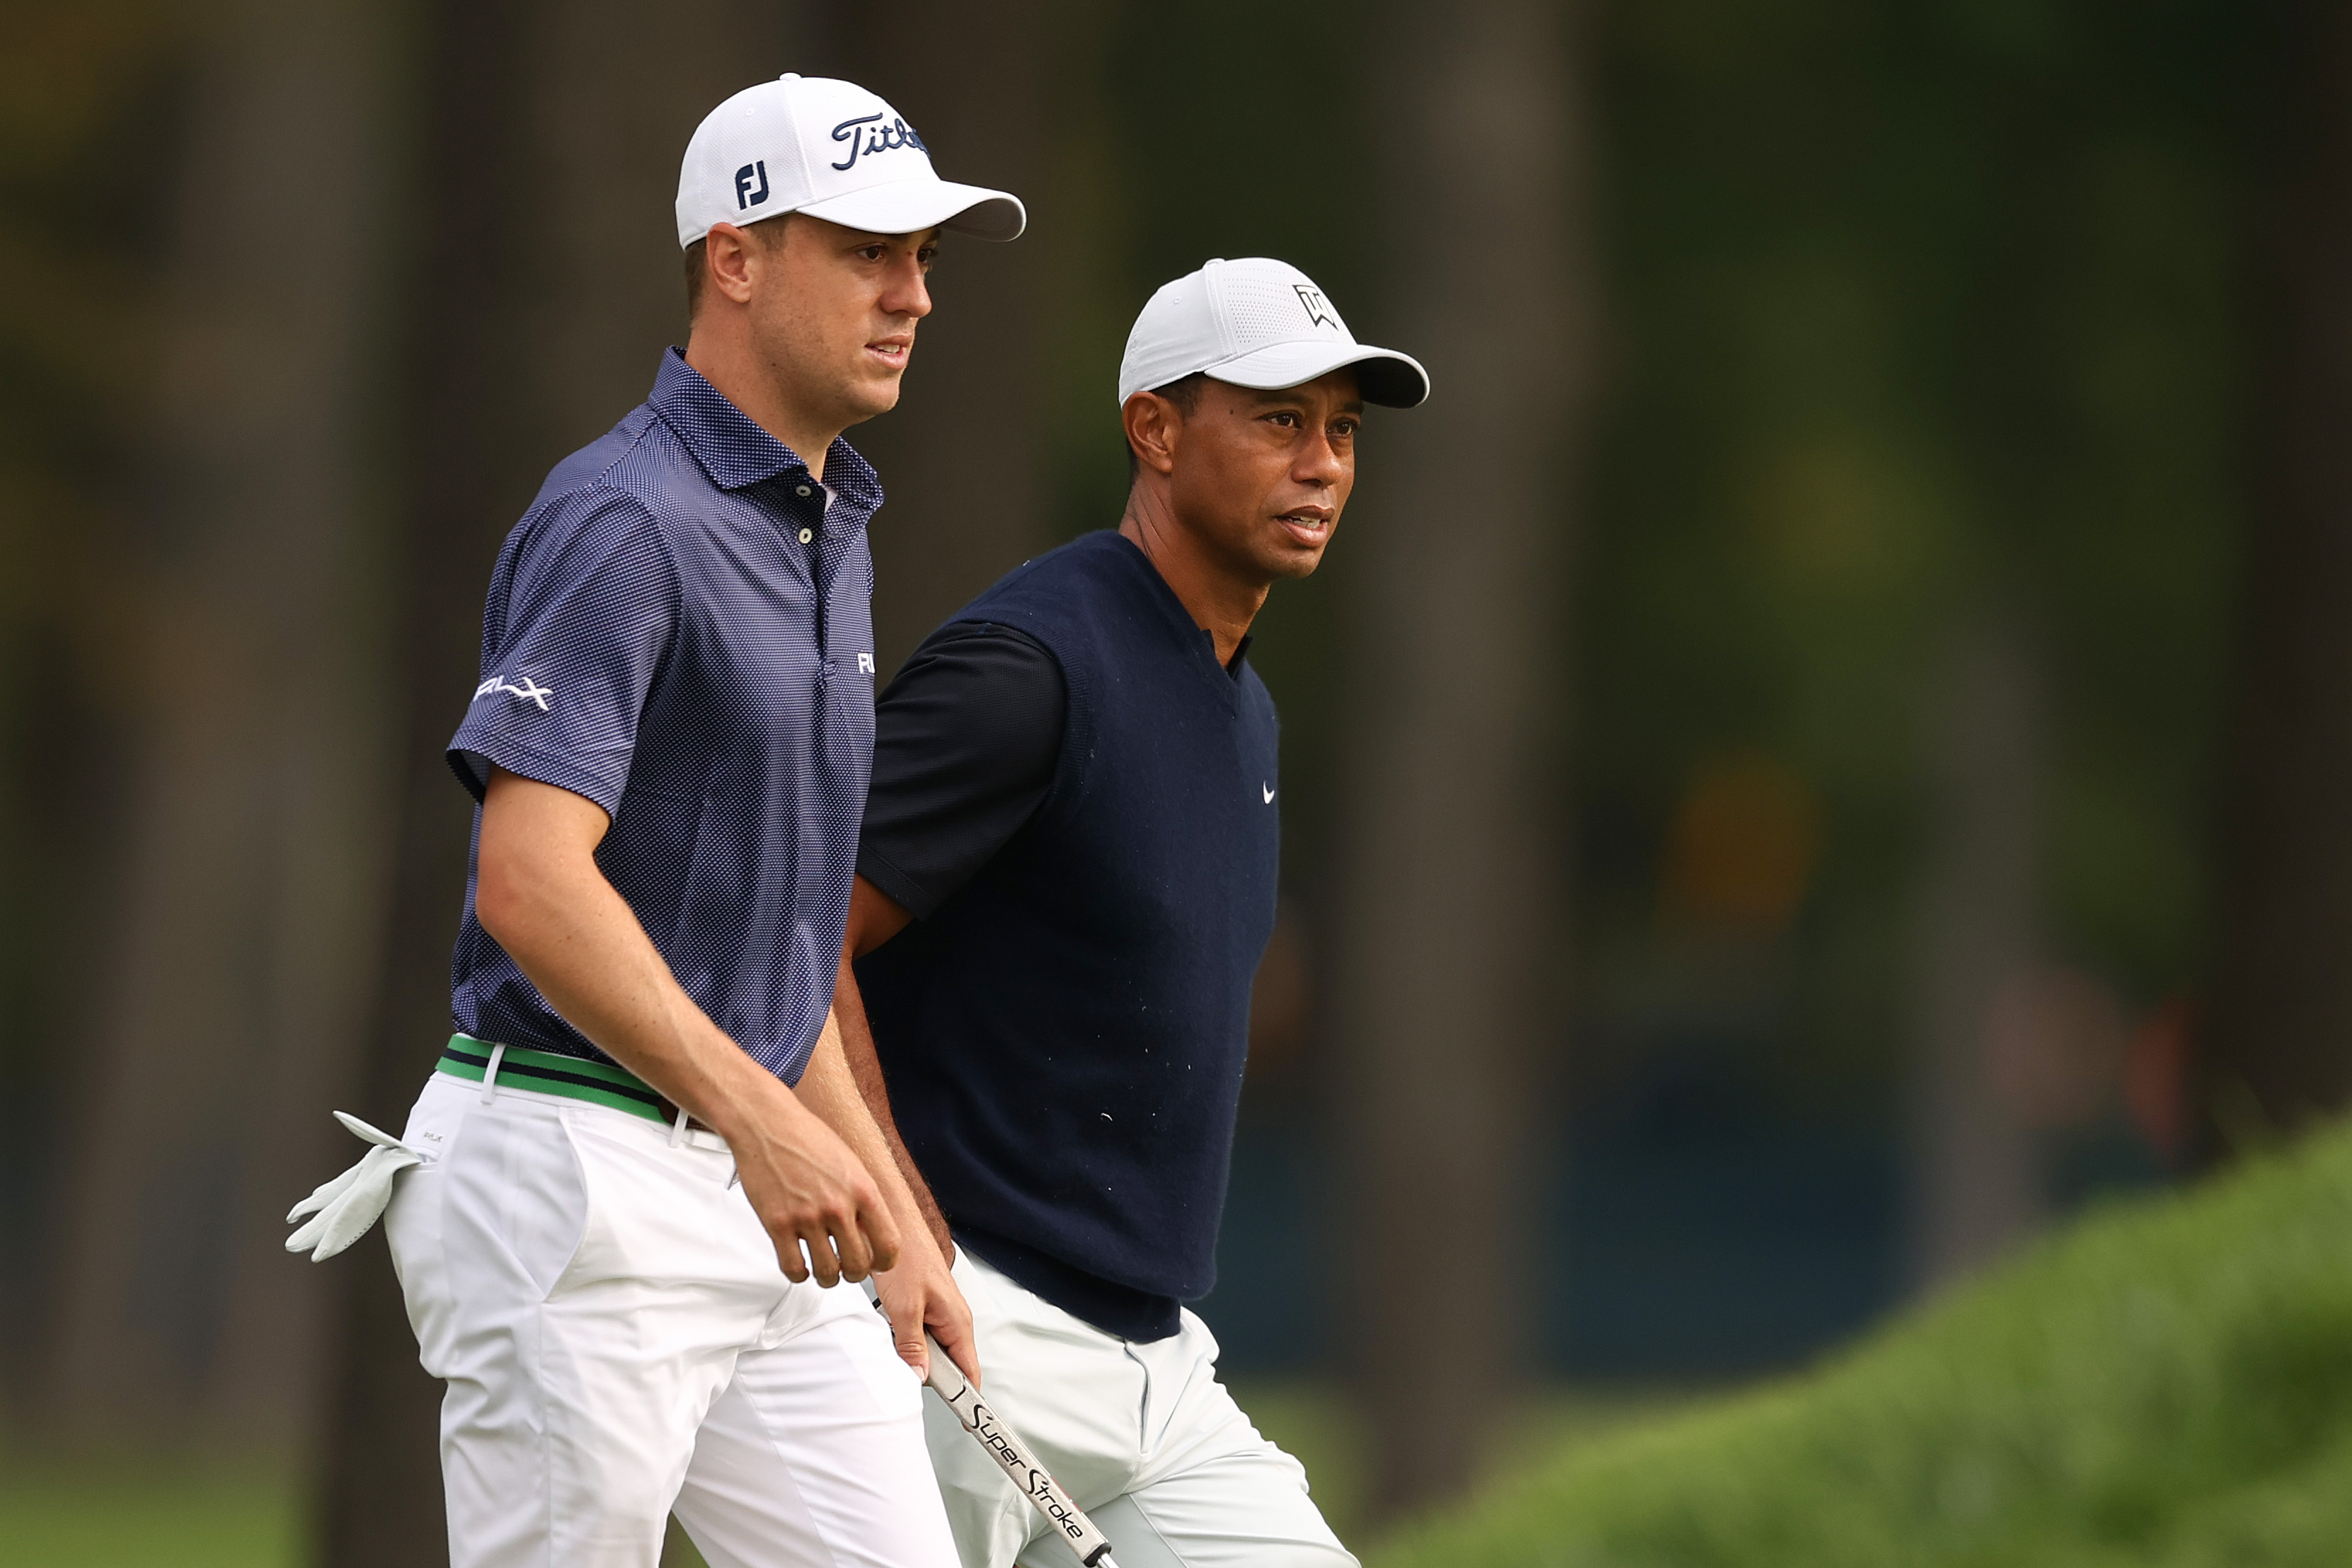 U.S. Open 2020: Second round tee times and pairings at Winged Foot